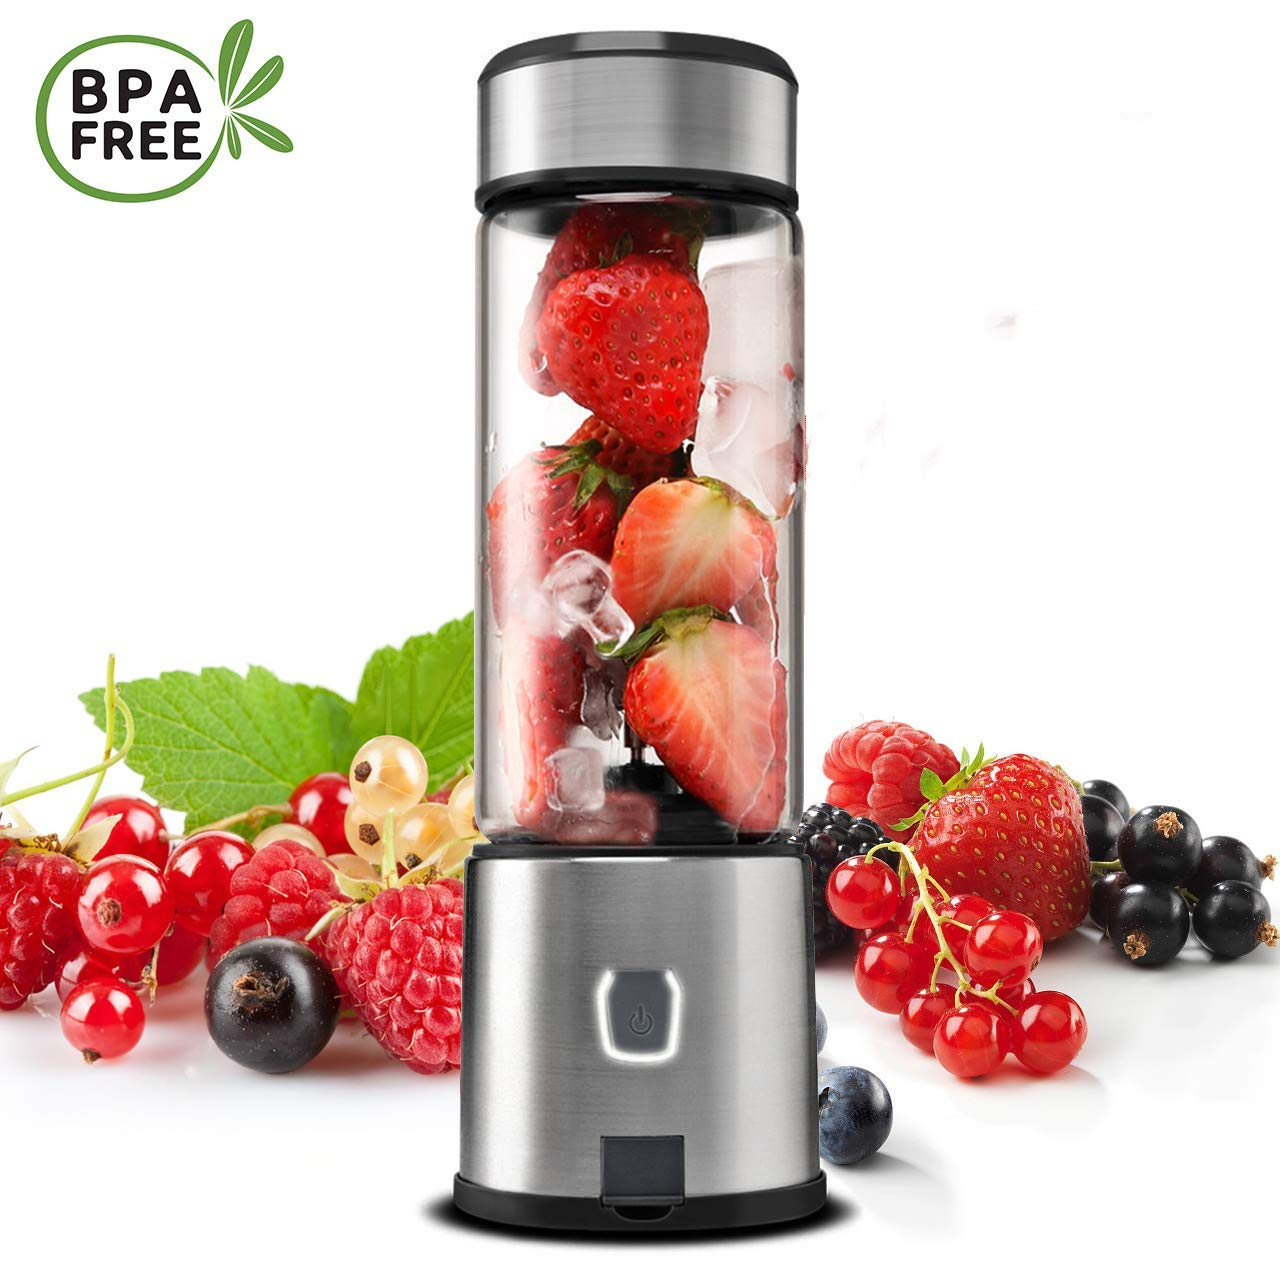 Personal Blender, TOPQSC Portable Blender 15oz USB Rechargeable 5200mAh, Smoothie Blender with Durable Glass, Stainless blades 16500rpm, Perfect for Shakes,Smoothies and Baby Food, FDA BPA Free Black